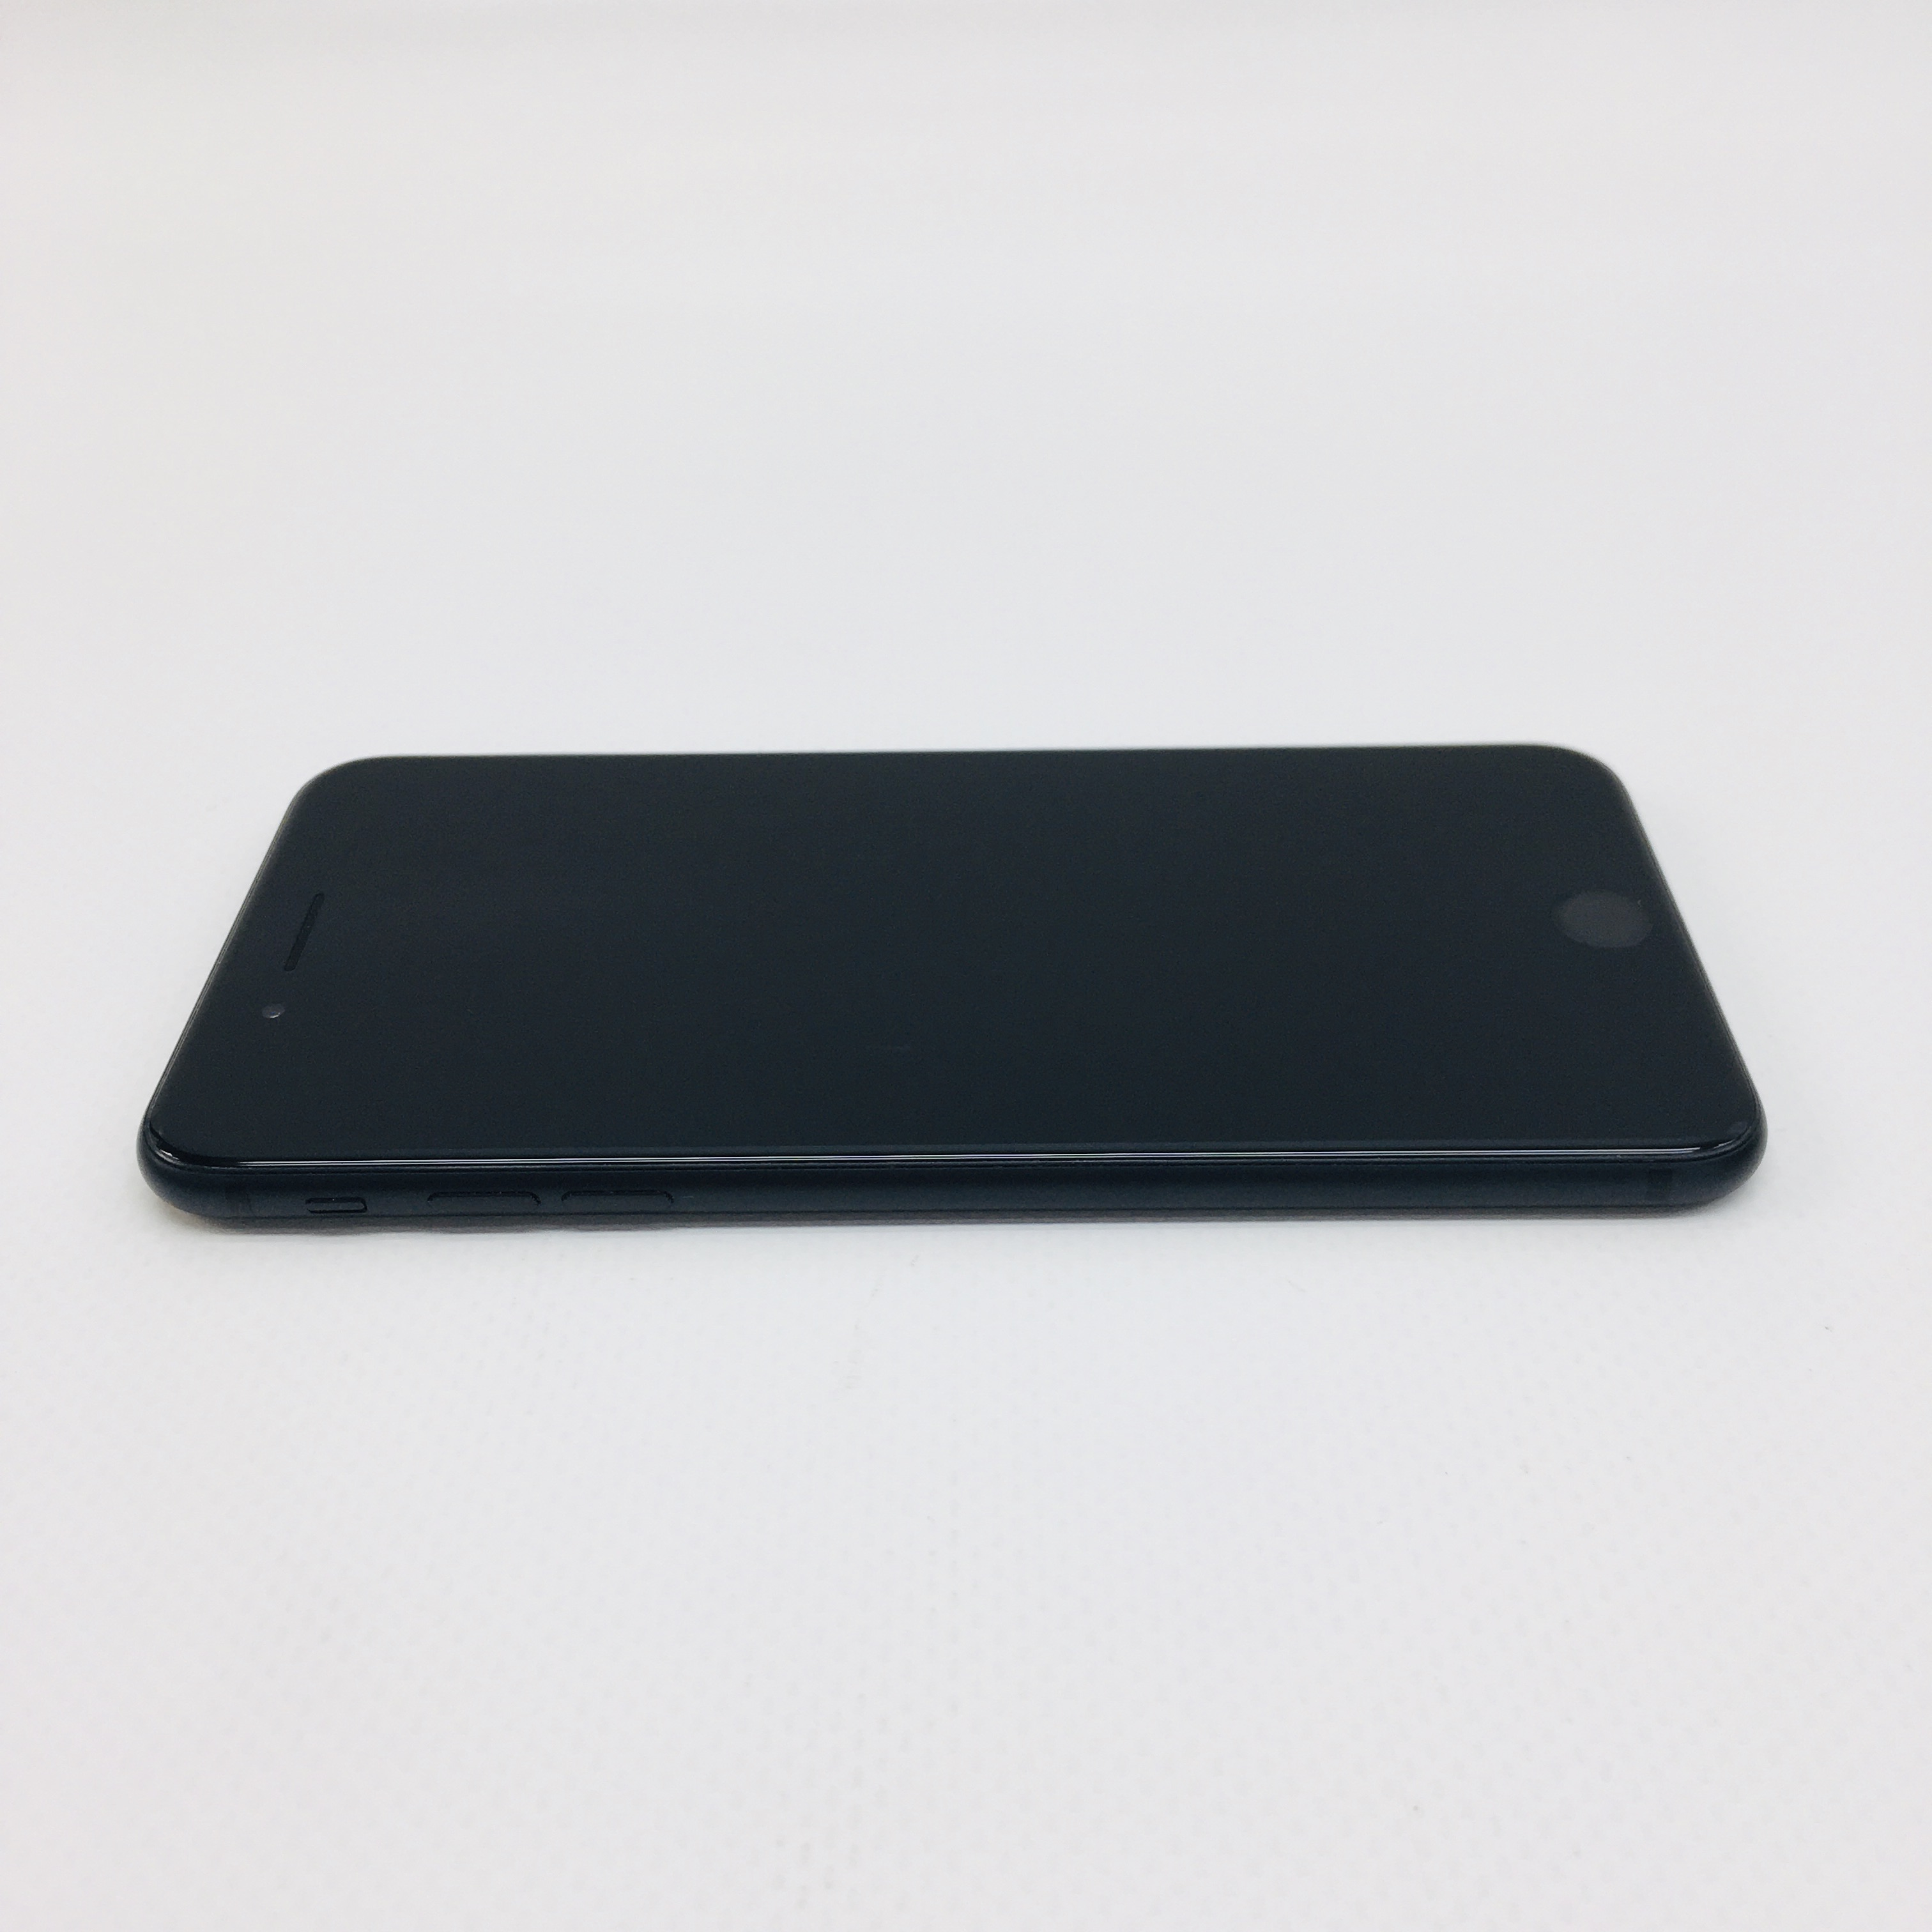 iPhone 7 Plus 128GB, 128GB, Black, image 2